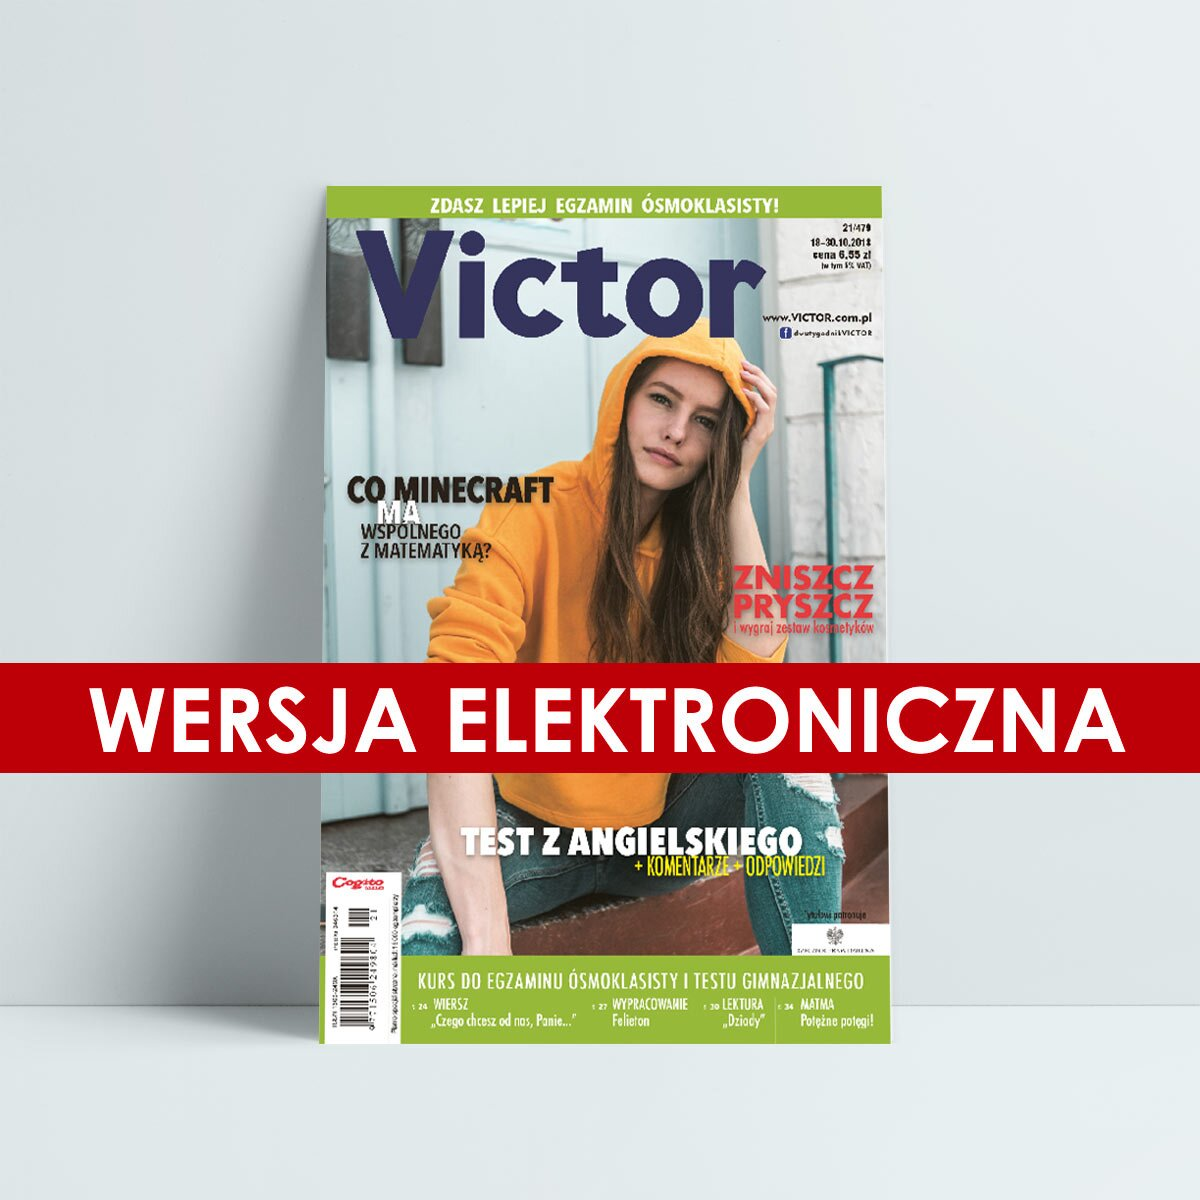 victor21 2018 product image